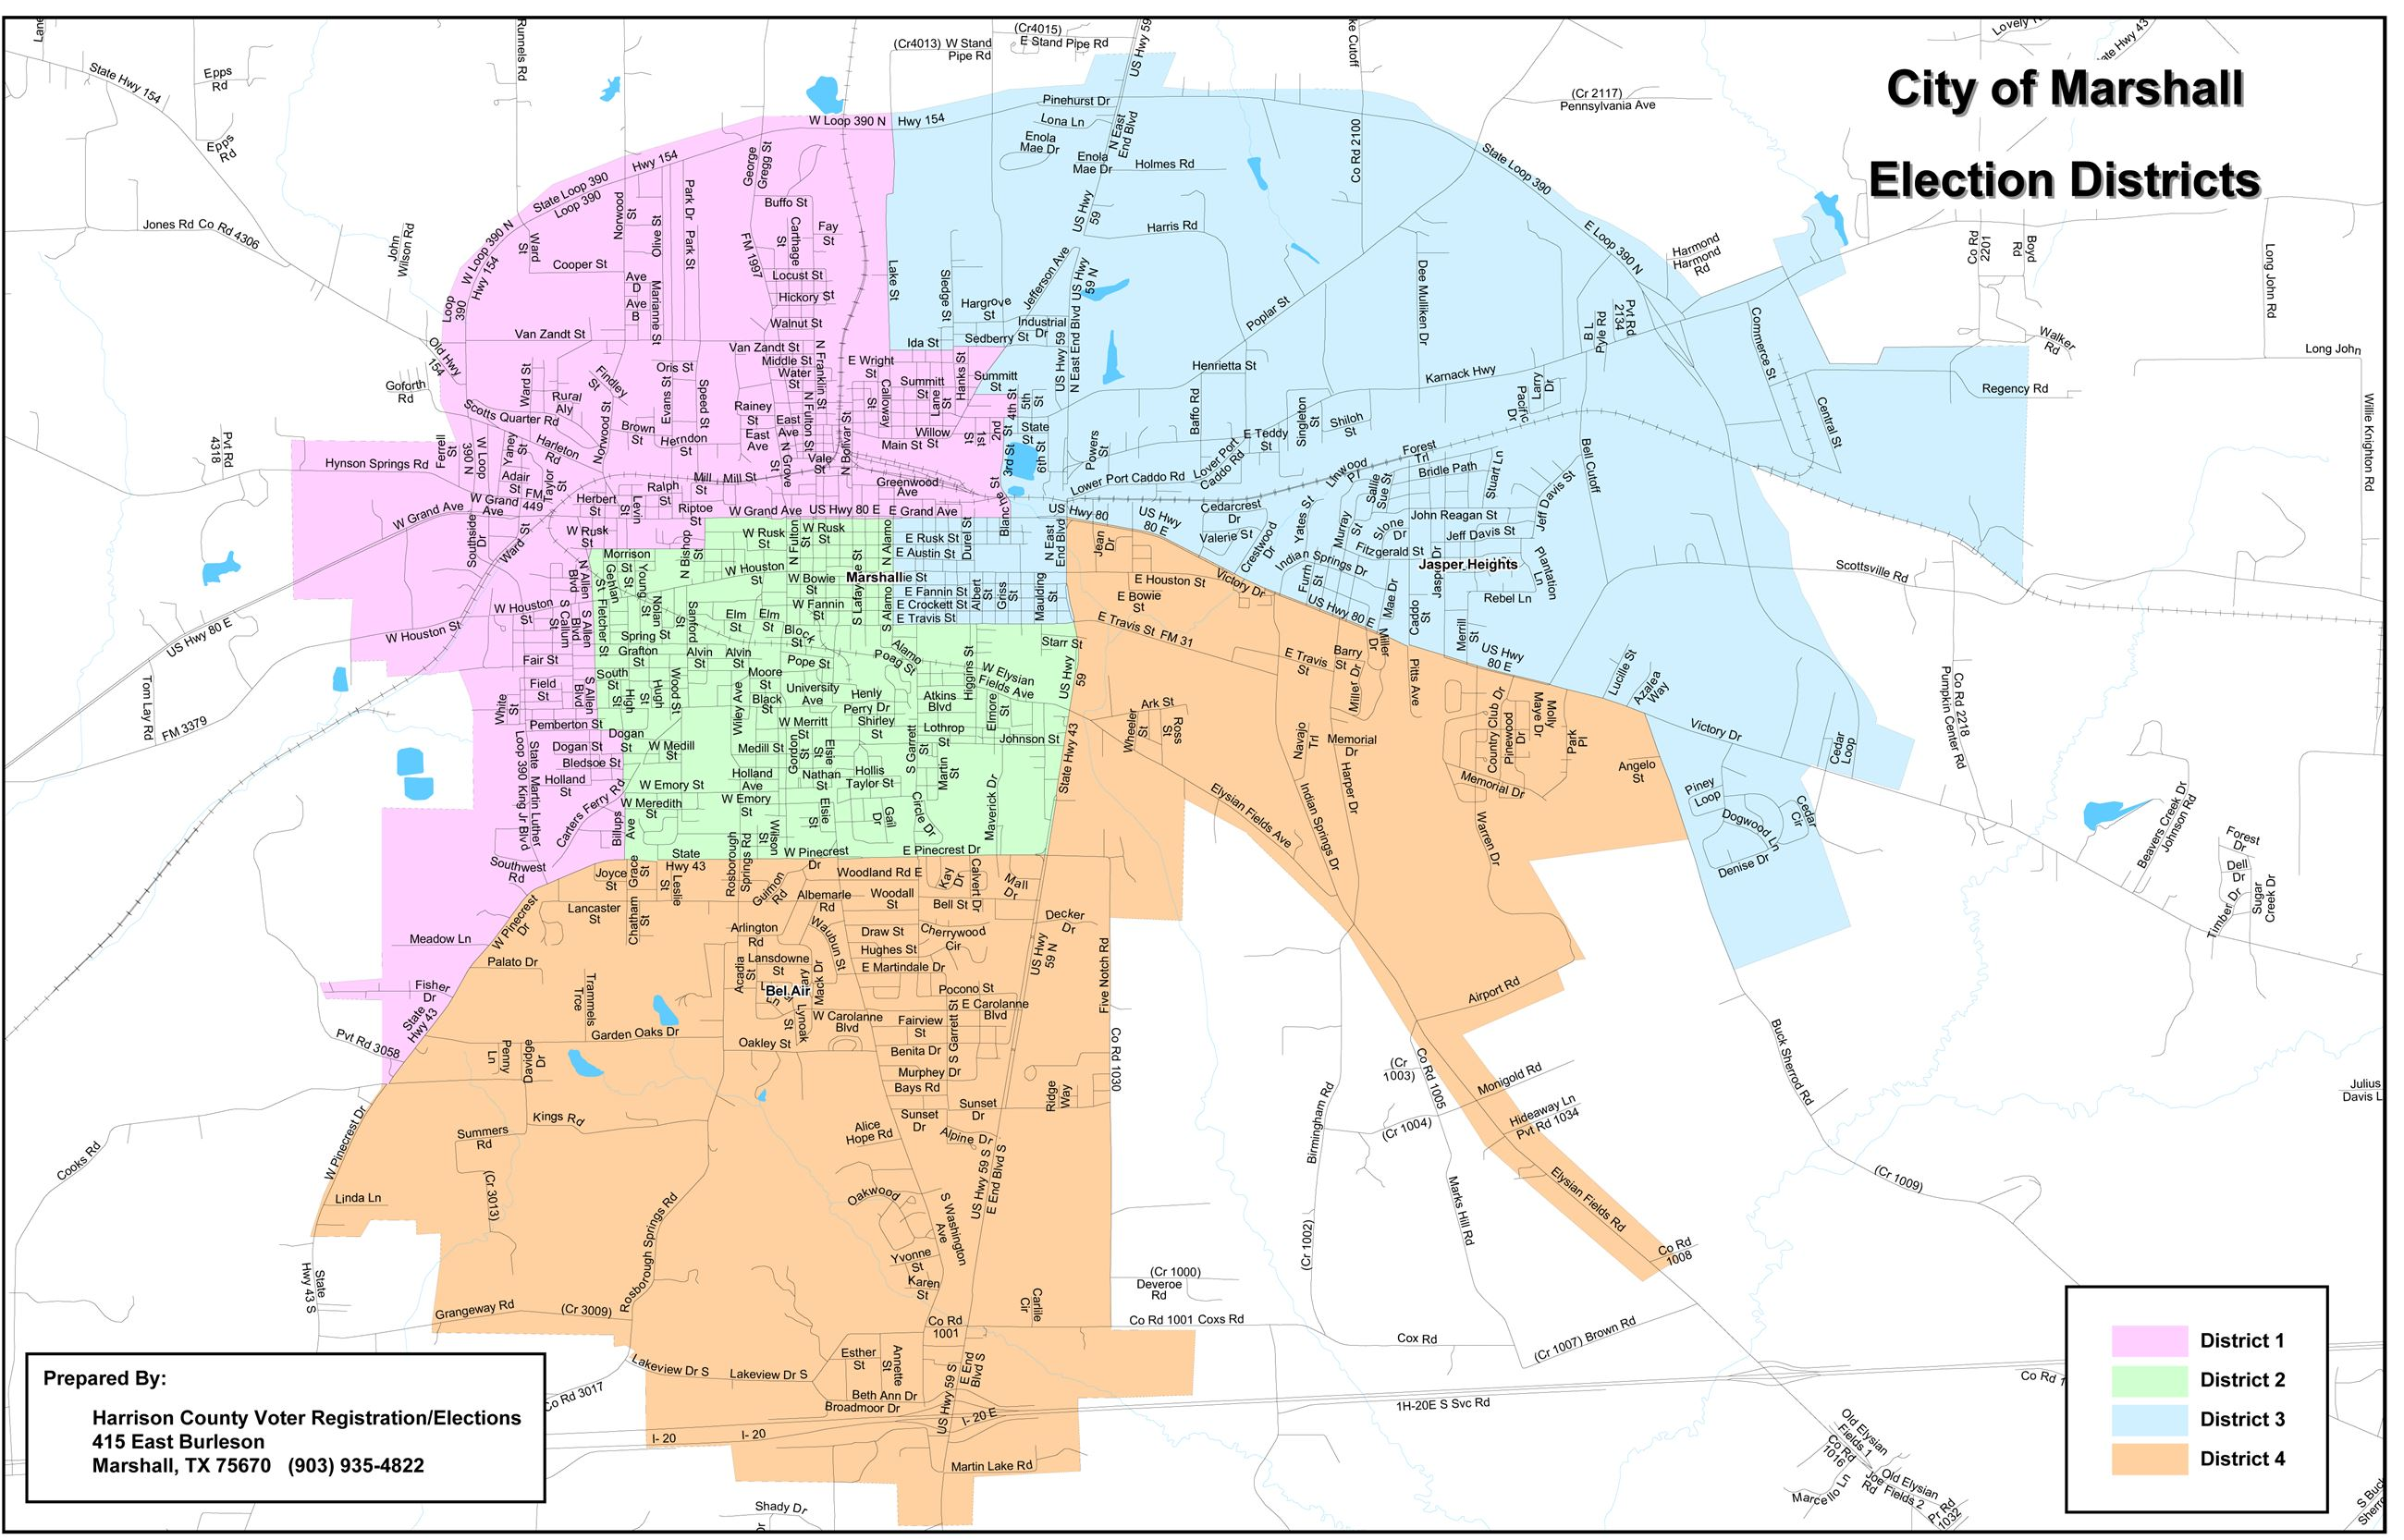 View a map detailing City of Marshall Election Districts 1 through 4 (PDF) Opens in new window